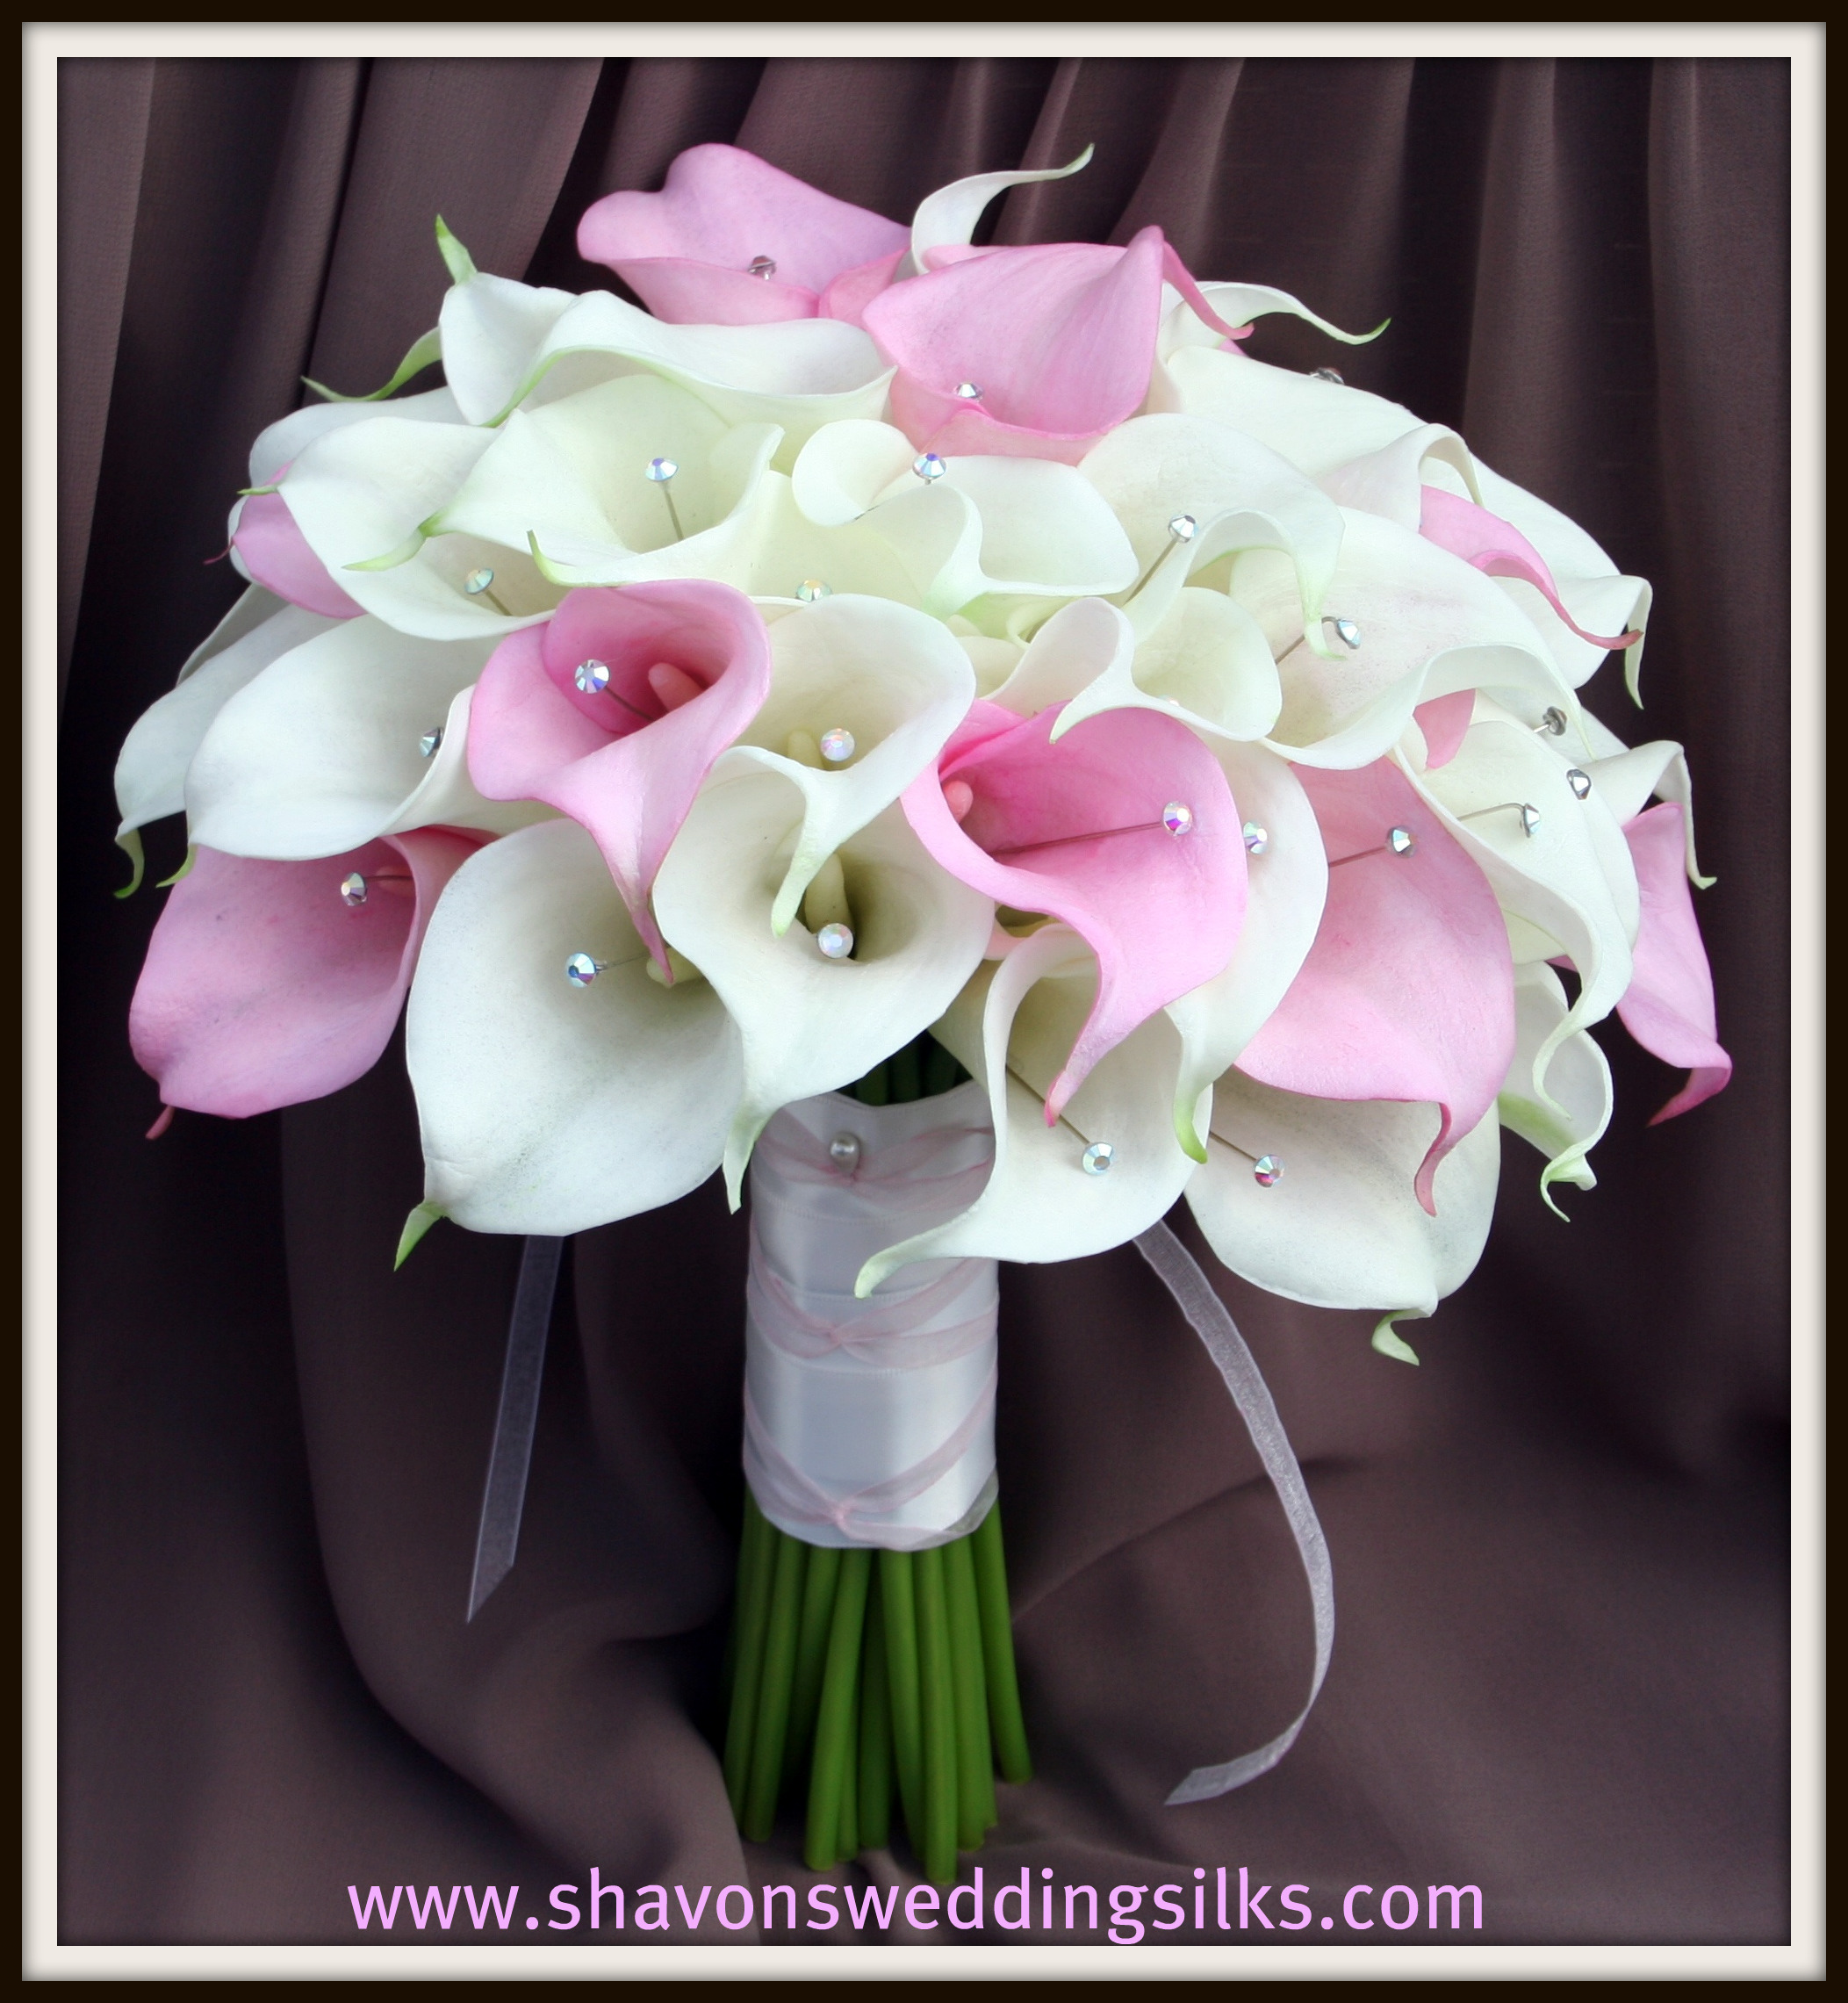 Ceremony, Inspiration, Flowers & Decor, Bridesmaids, Bridesmaids Dresses, Fashion, white, pink, silver, Ceremony Flowers, Bridesmaid Bouquets, Flowers, Wedding, Calla, Lilies, Board, Bling, Crystals, Touch, Shavons wedding silks, Real, Floramatique, Flower Wedding Dresses